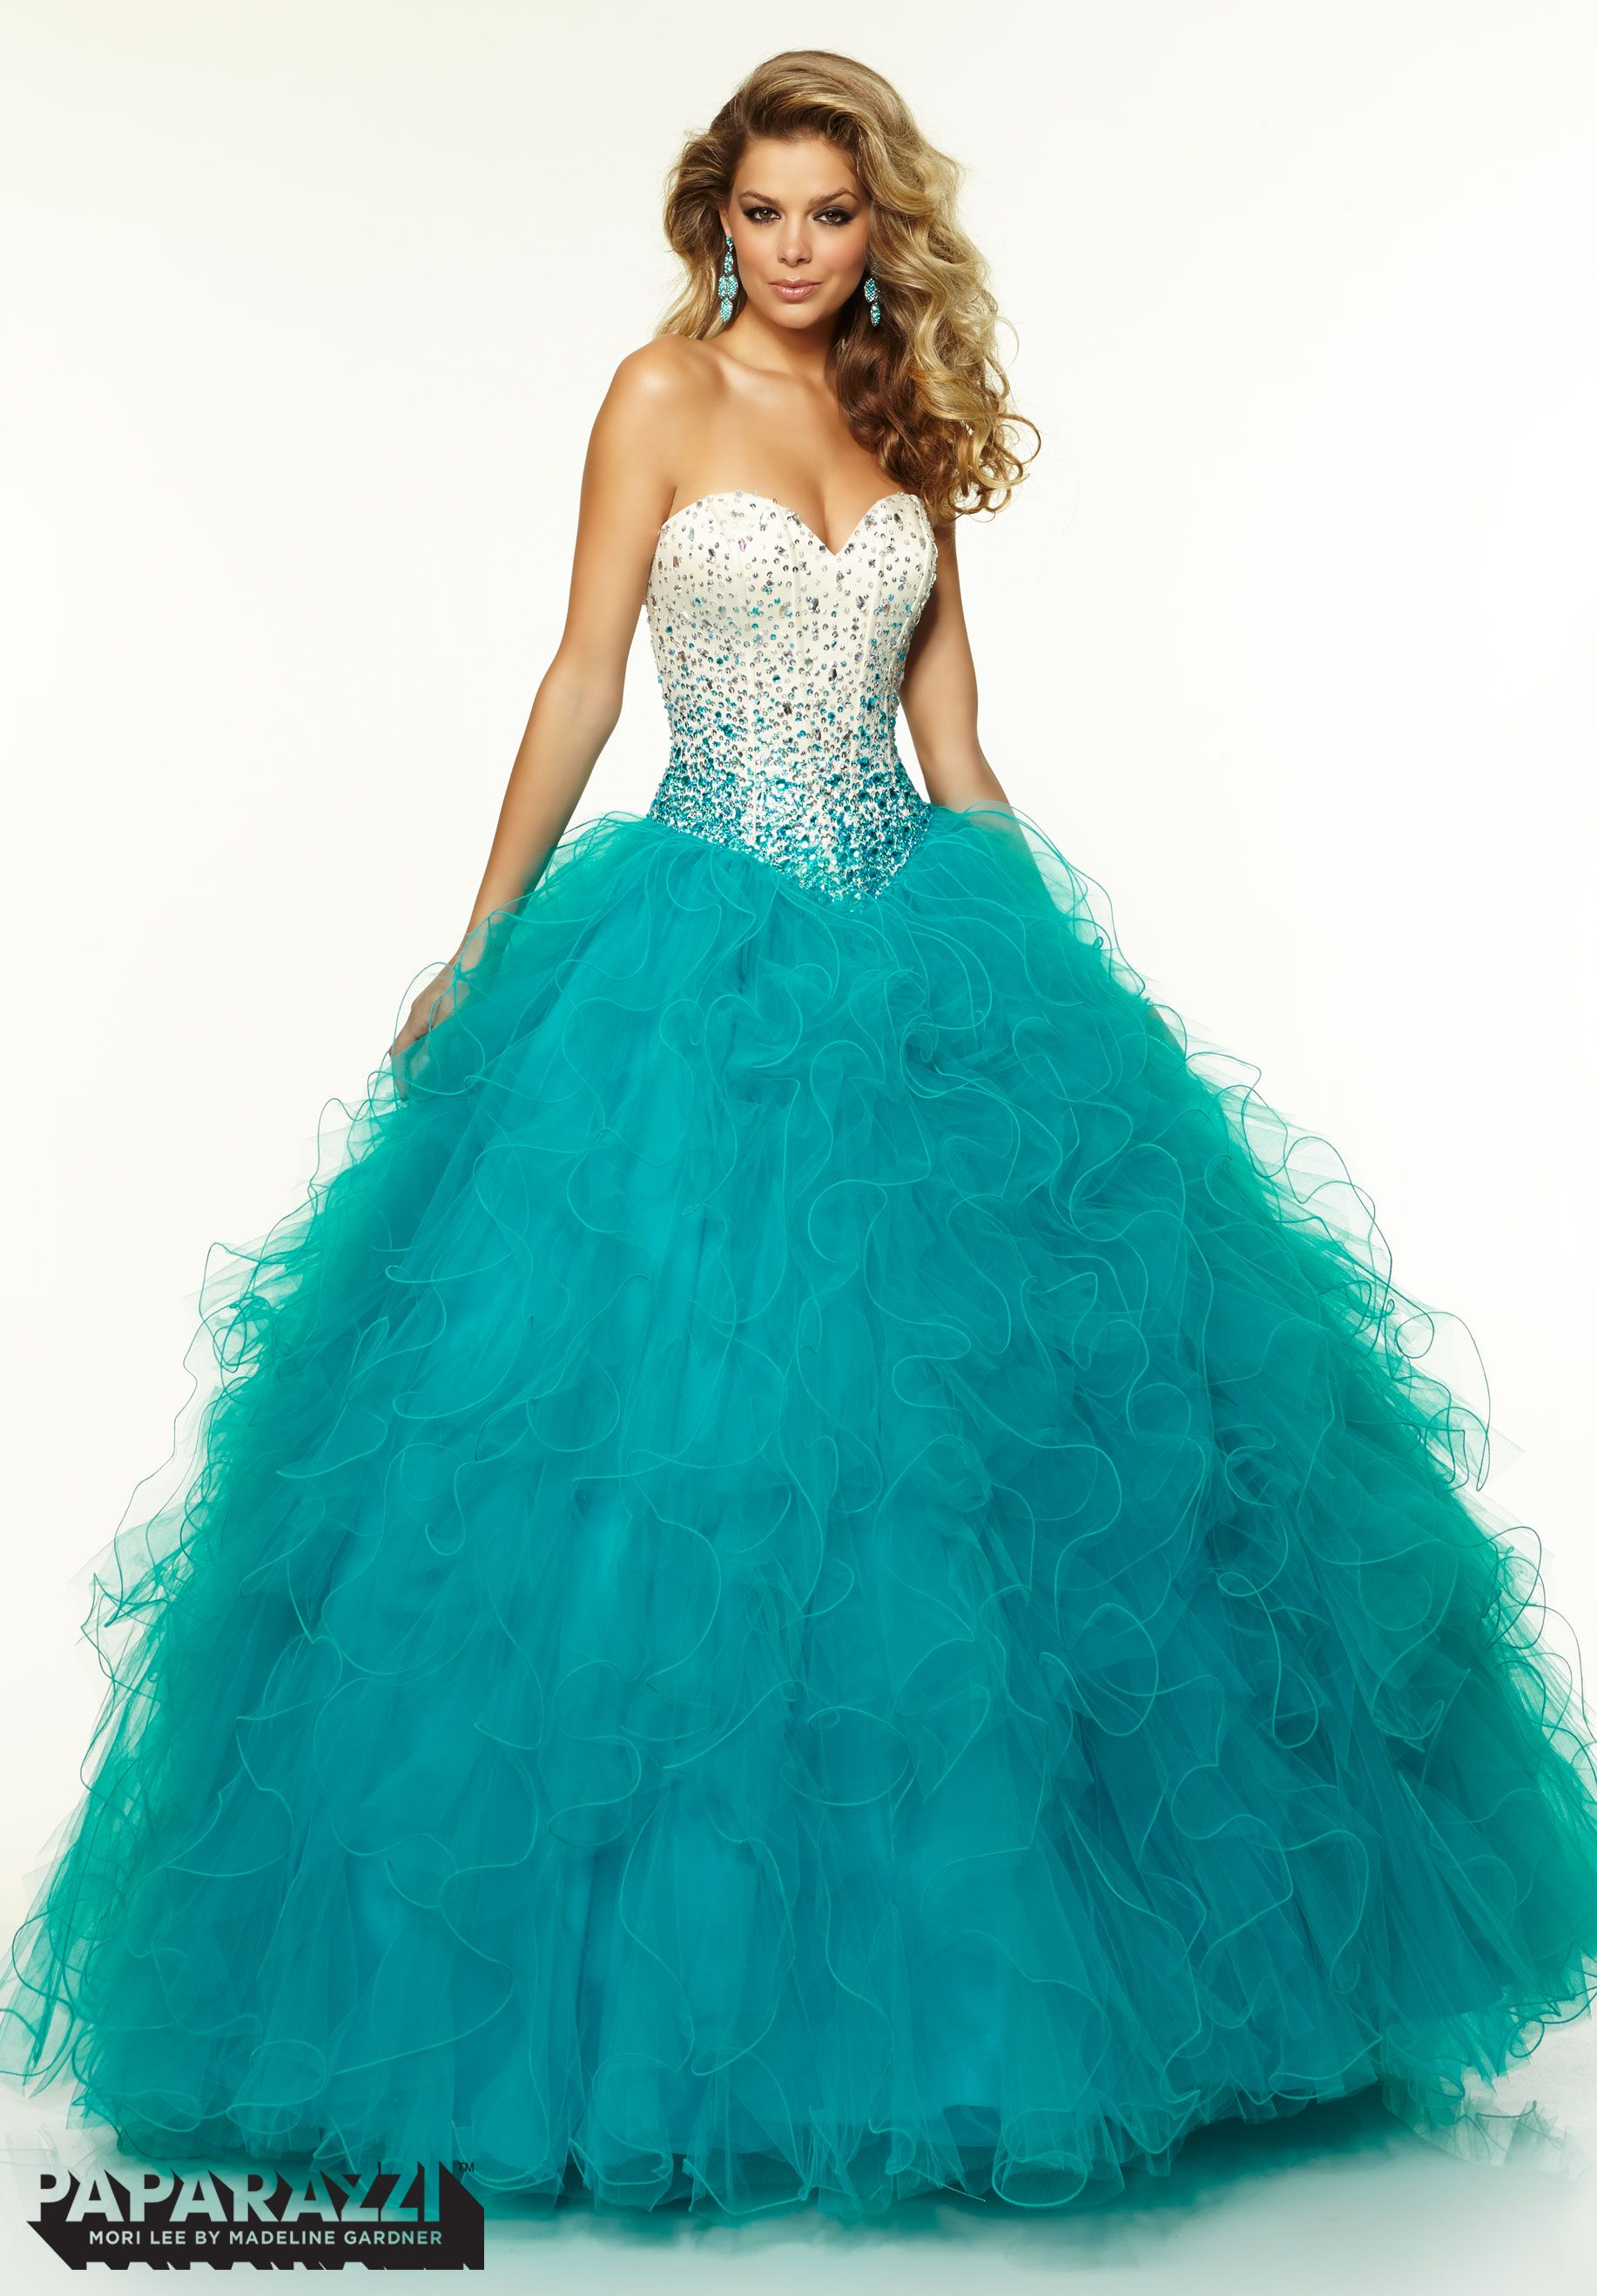 e39ac5cf7a9 97086 Prom Dresses   Gowns Satin Ombre Beaded Bodice with Ruffled Tulle  Ballgown Skirt Teal